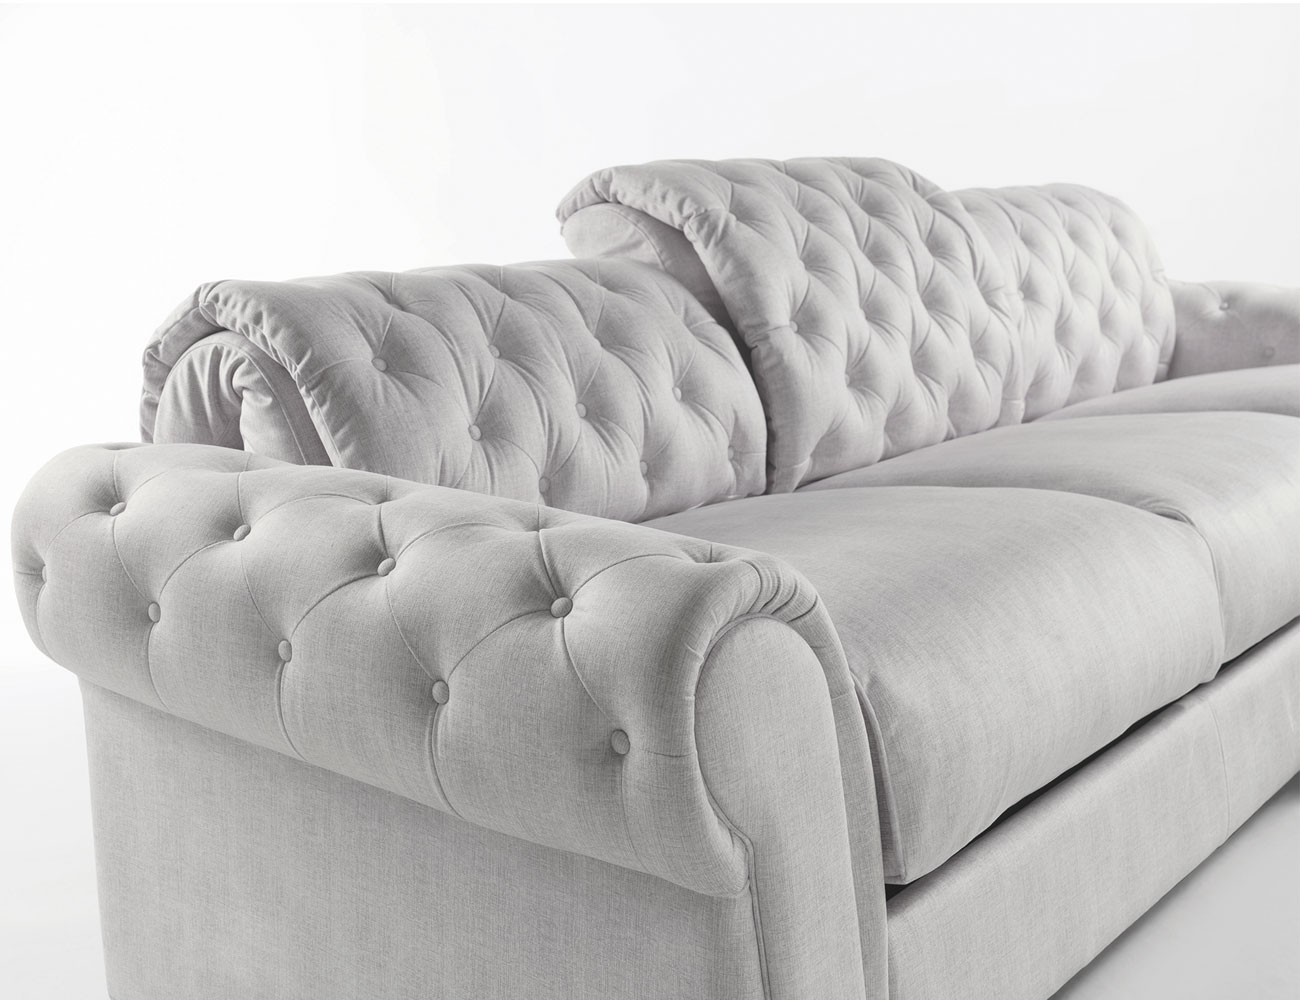 Sofa chaiselongue gran lujo decorativo capitone blanco tela 147